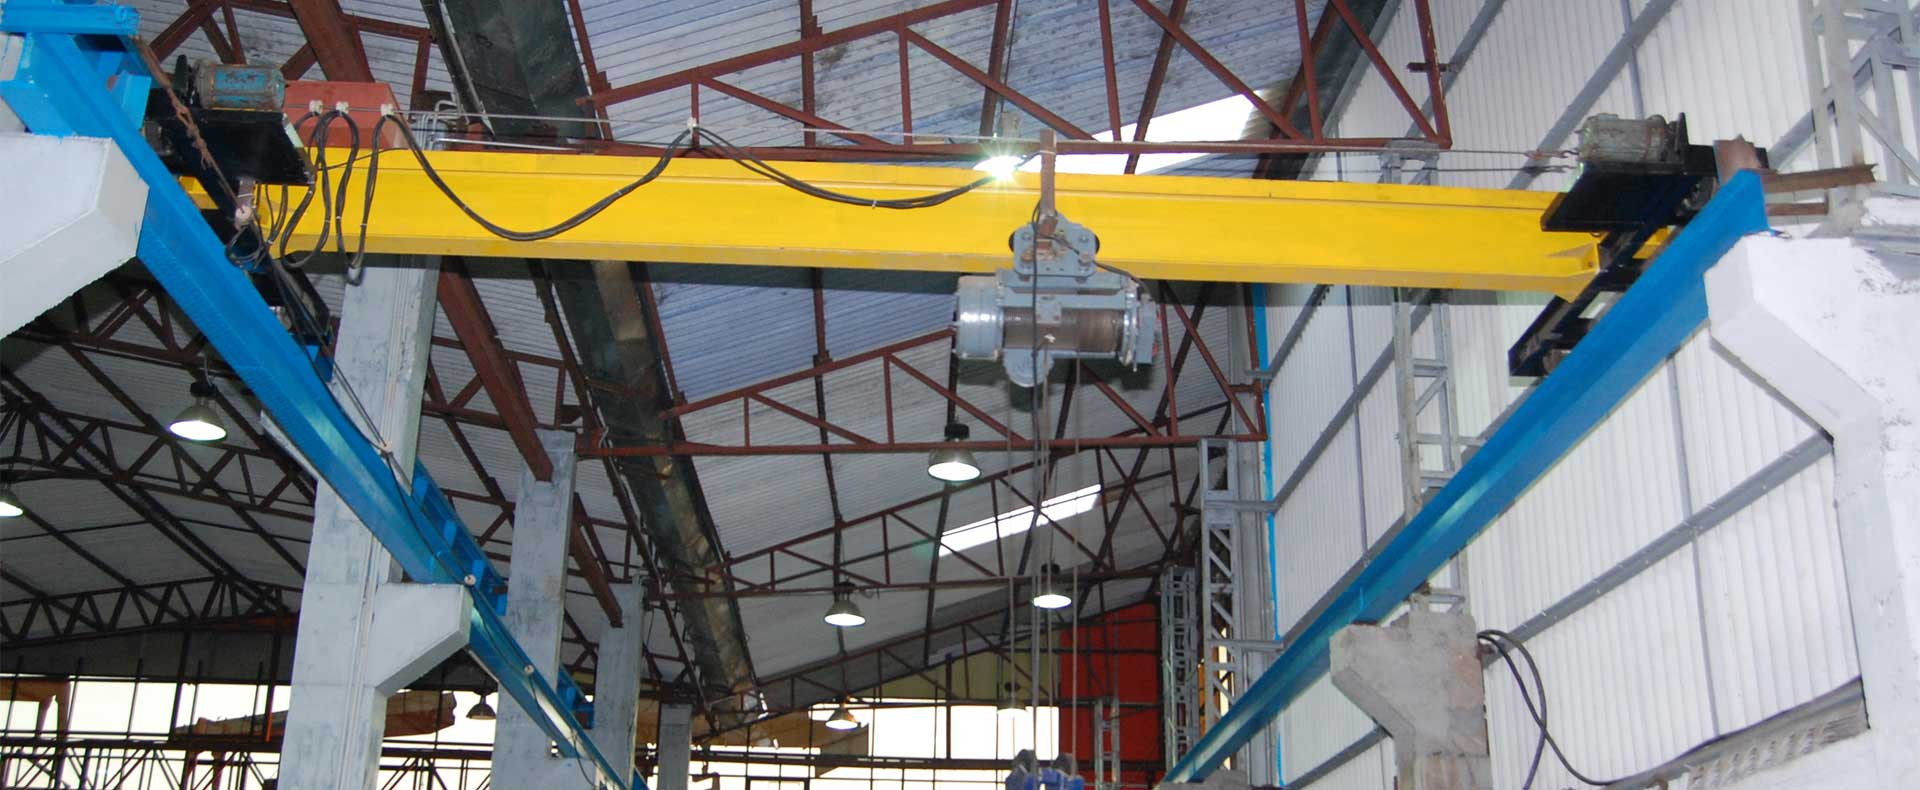 EOT & HOT Crane Goods Lift